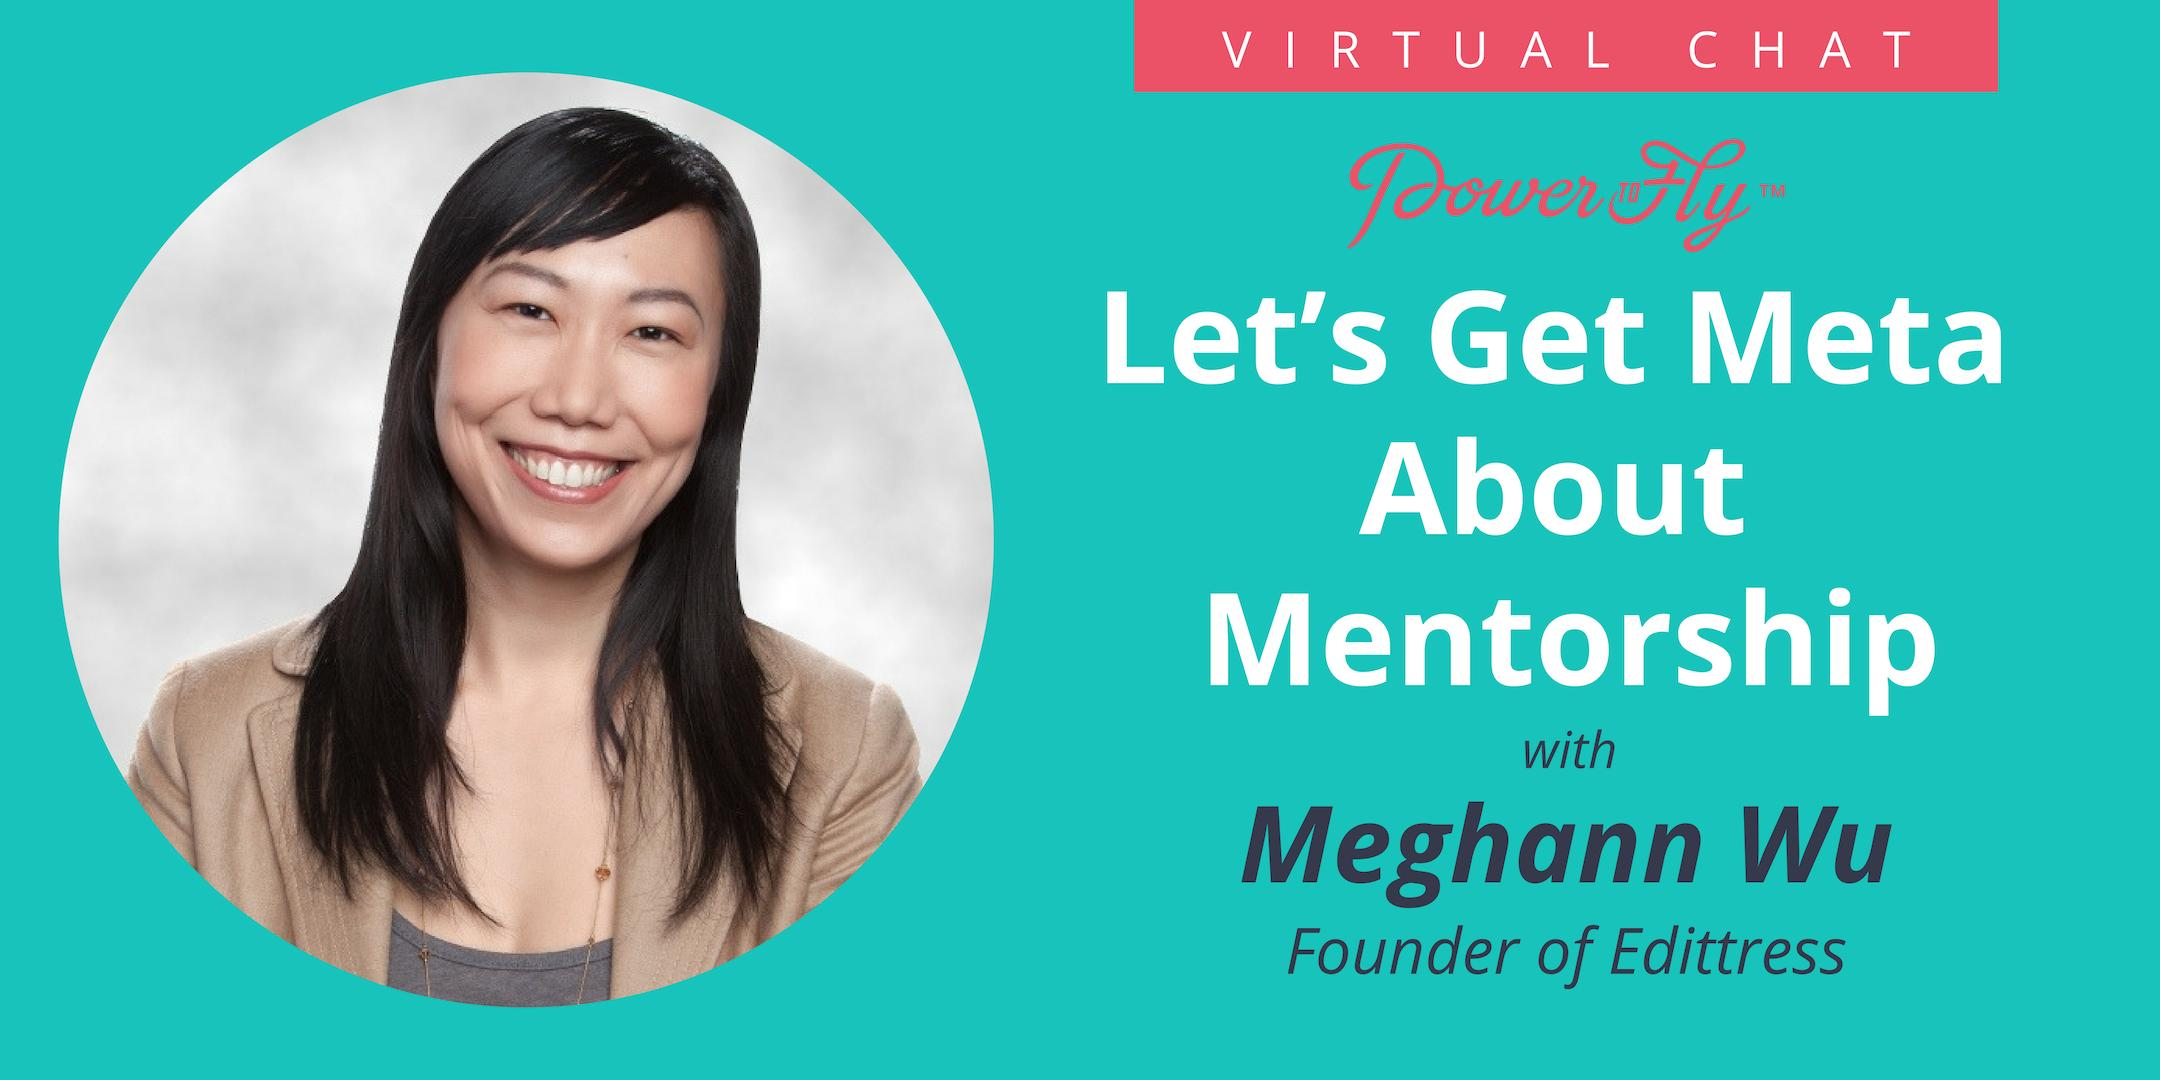 Let's Get Meta About Mentorship